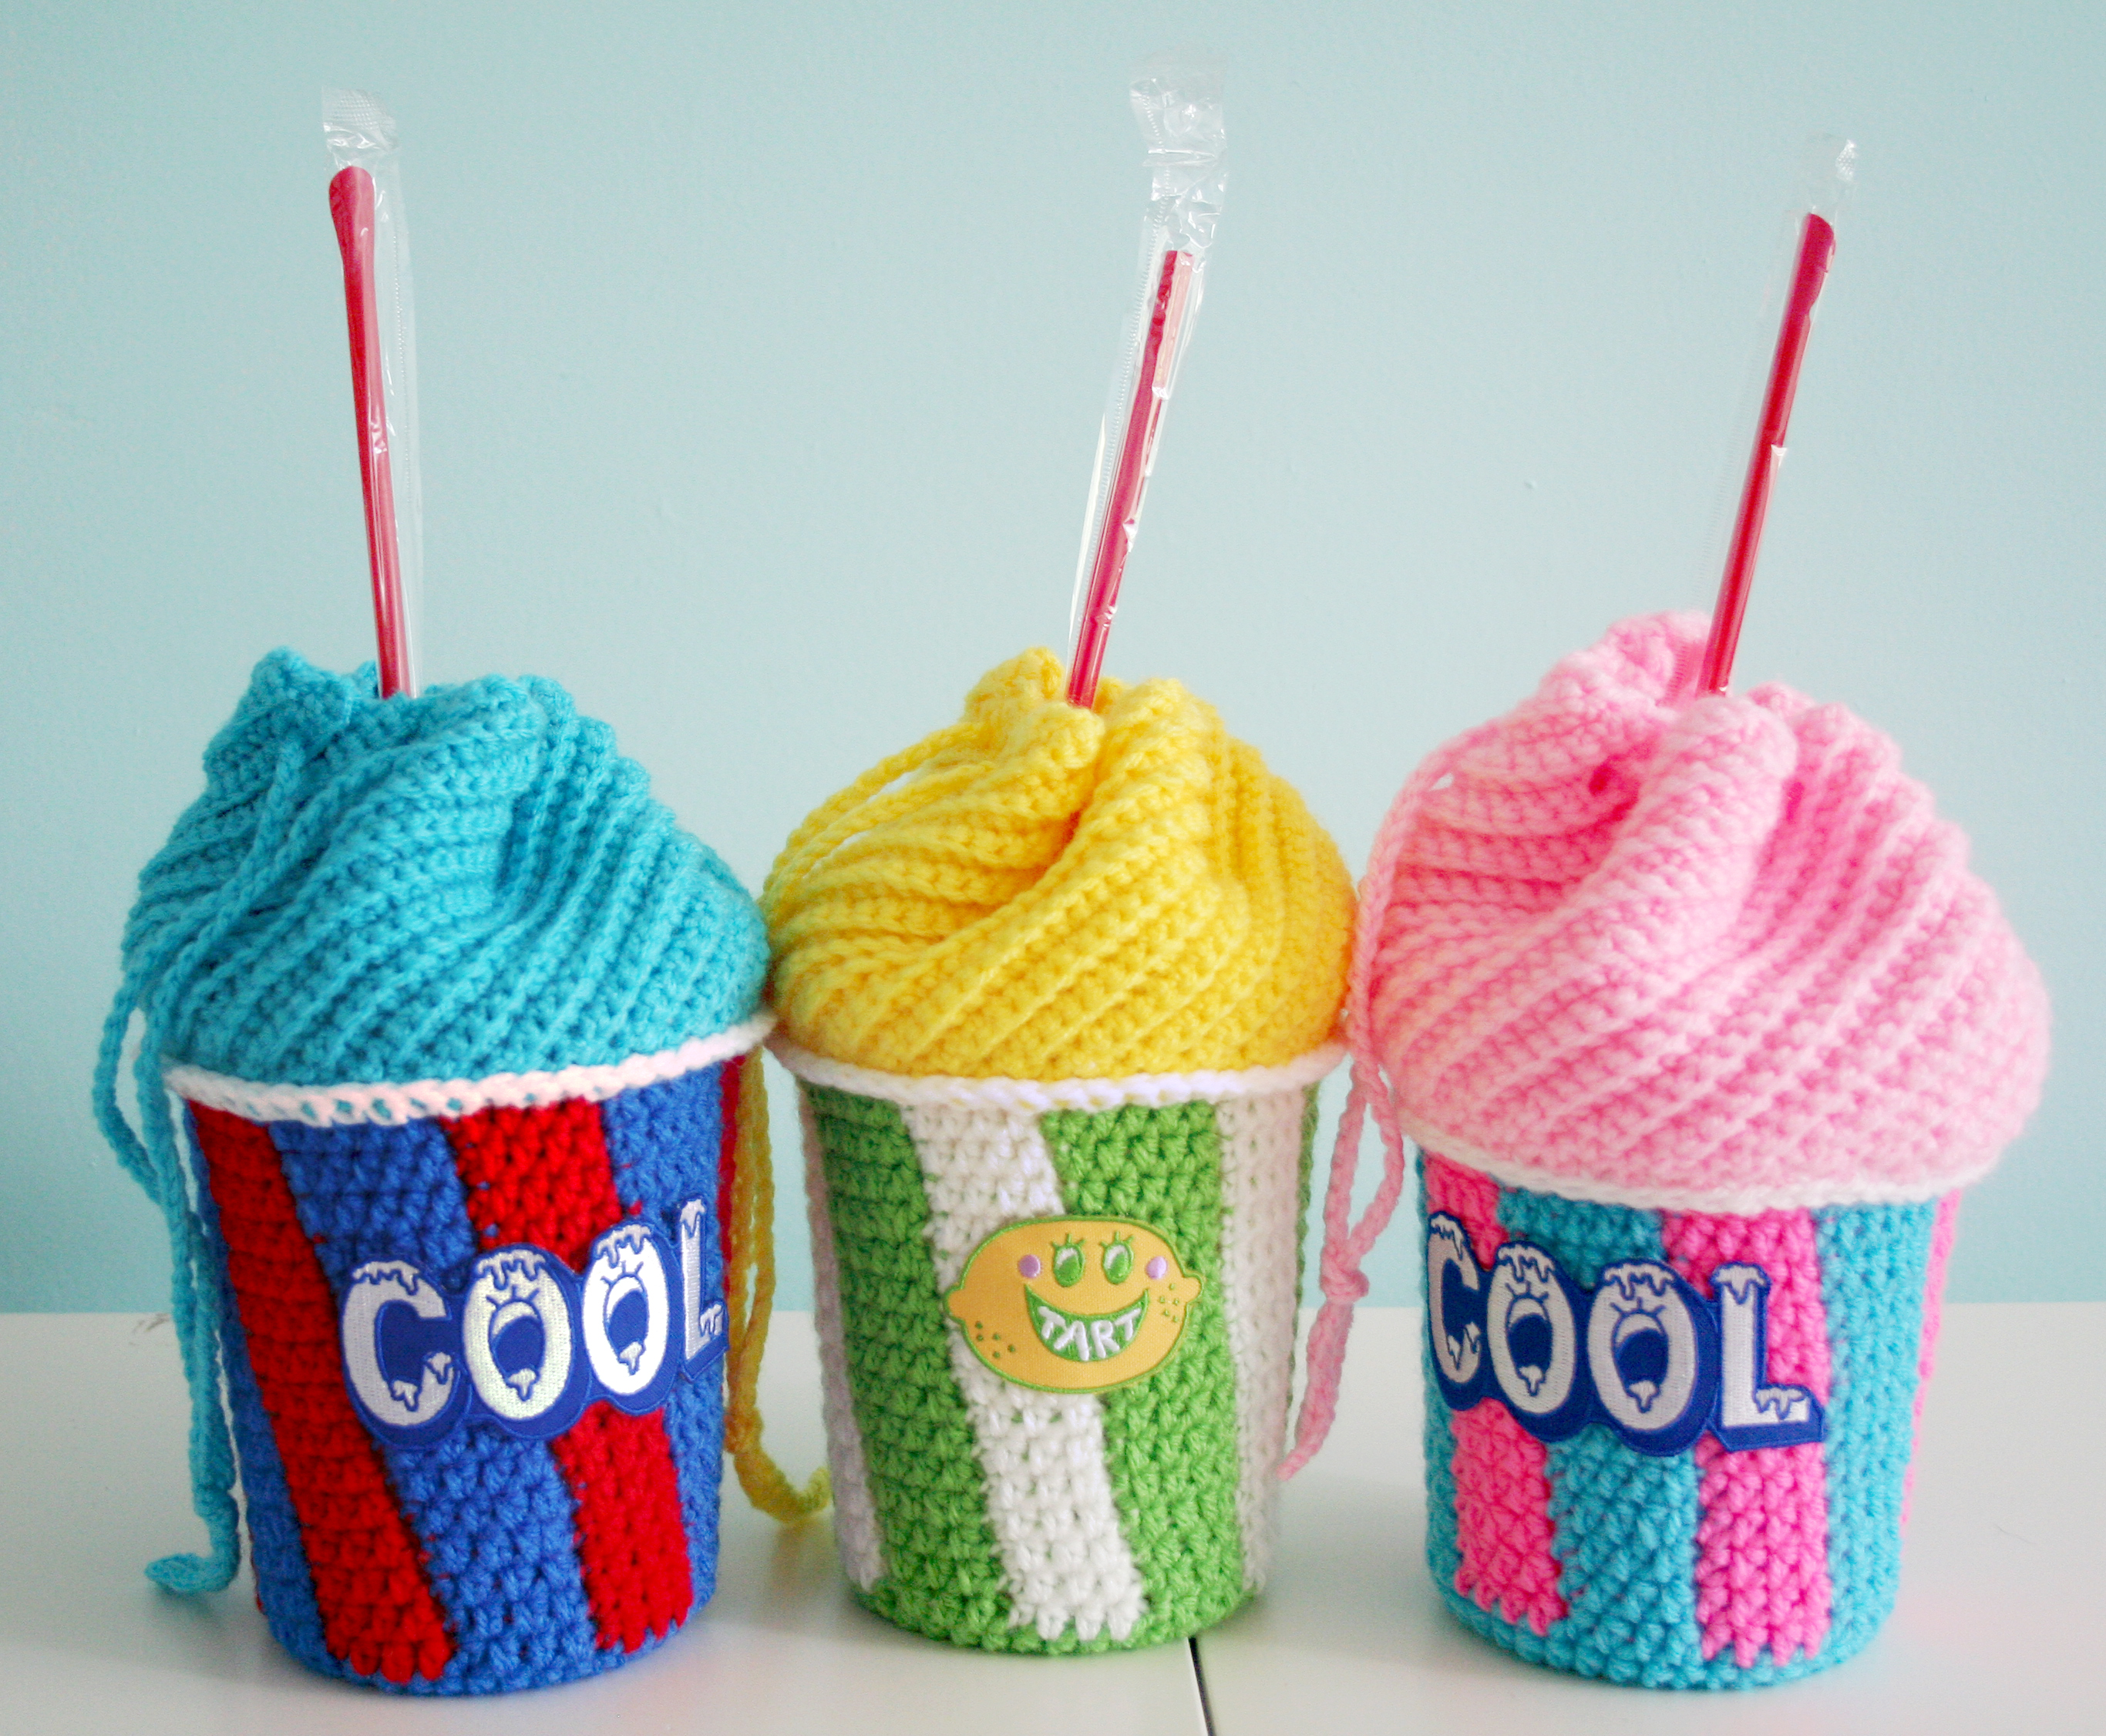 Crochet Backpack Bag Pattern : Free Crochet Pattern: Slushee Cup Drawstring Bag Twinkie Chan Blog